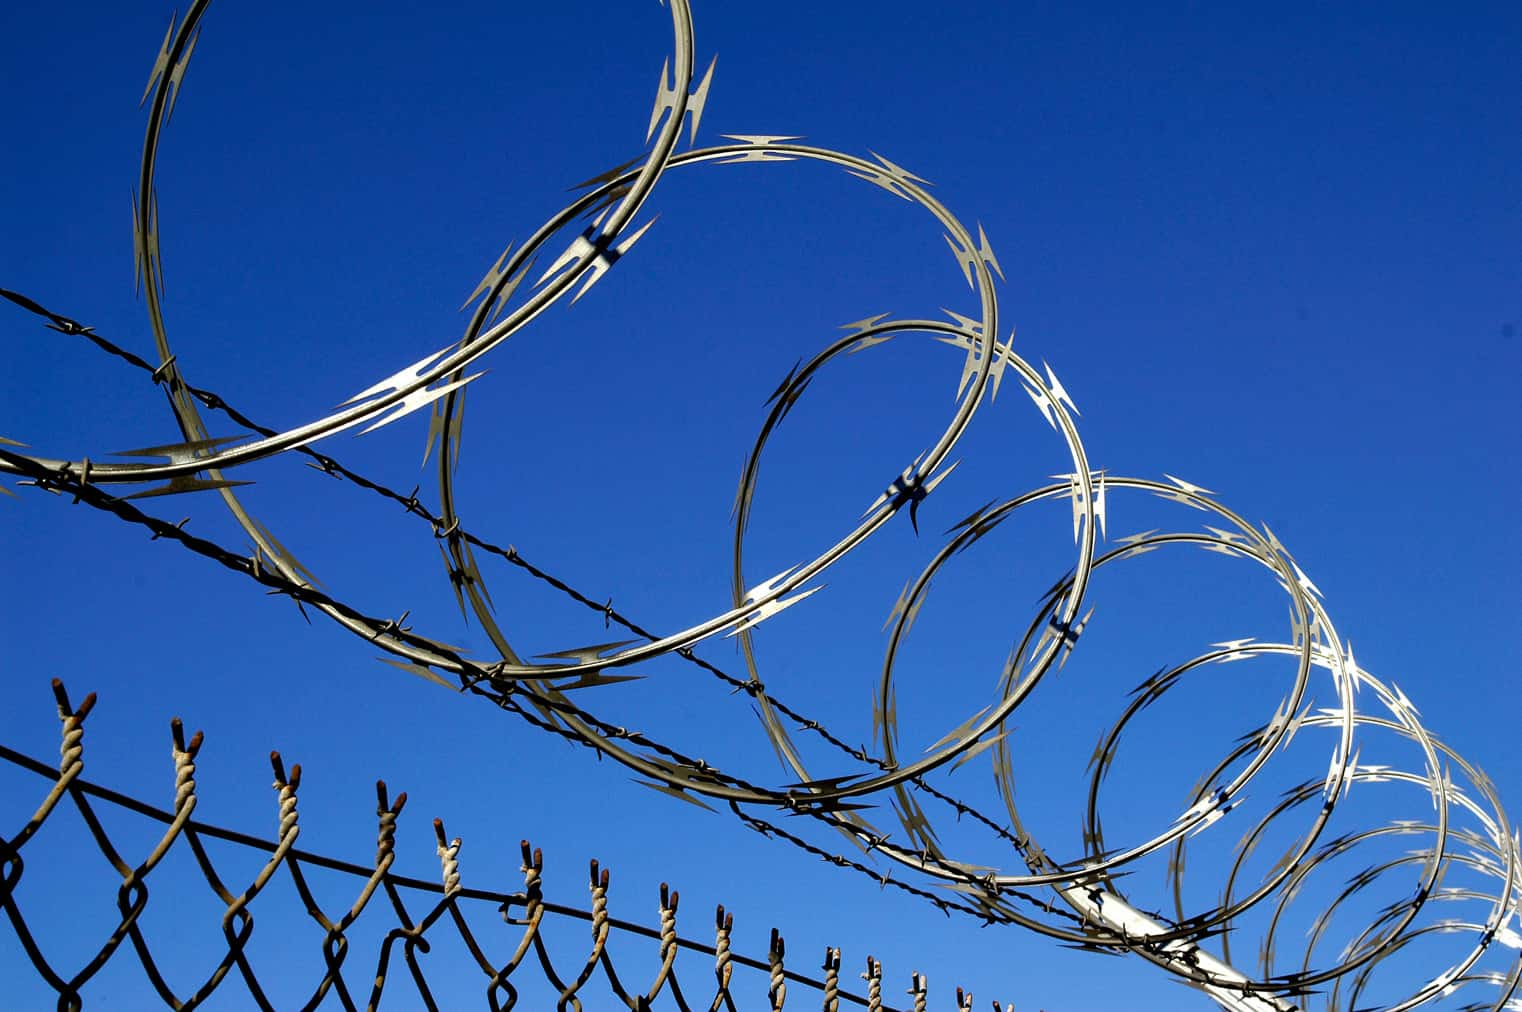 single spiral razor wire and barbed wire at the top of chain link fence